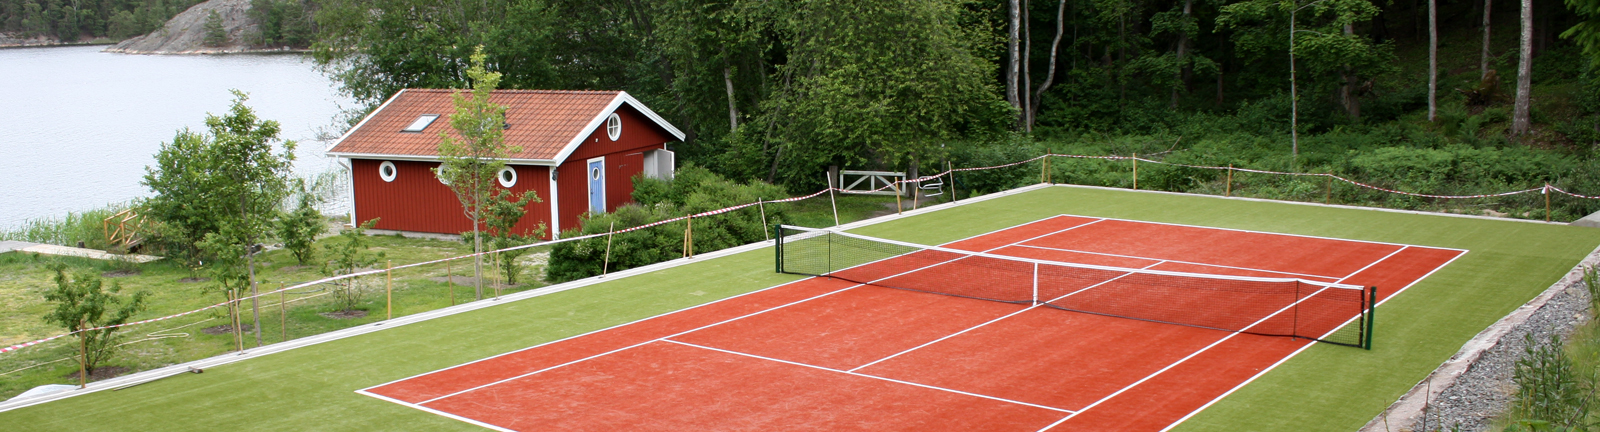 Act Global, synthetic turf manufacturer offers Xtreme Turf systems for tennis.